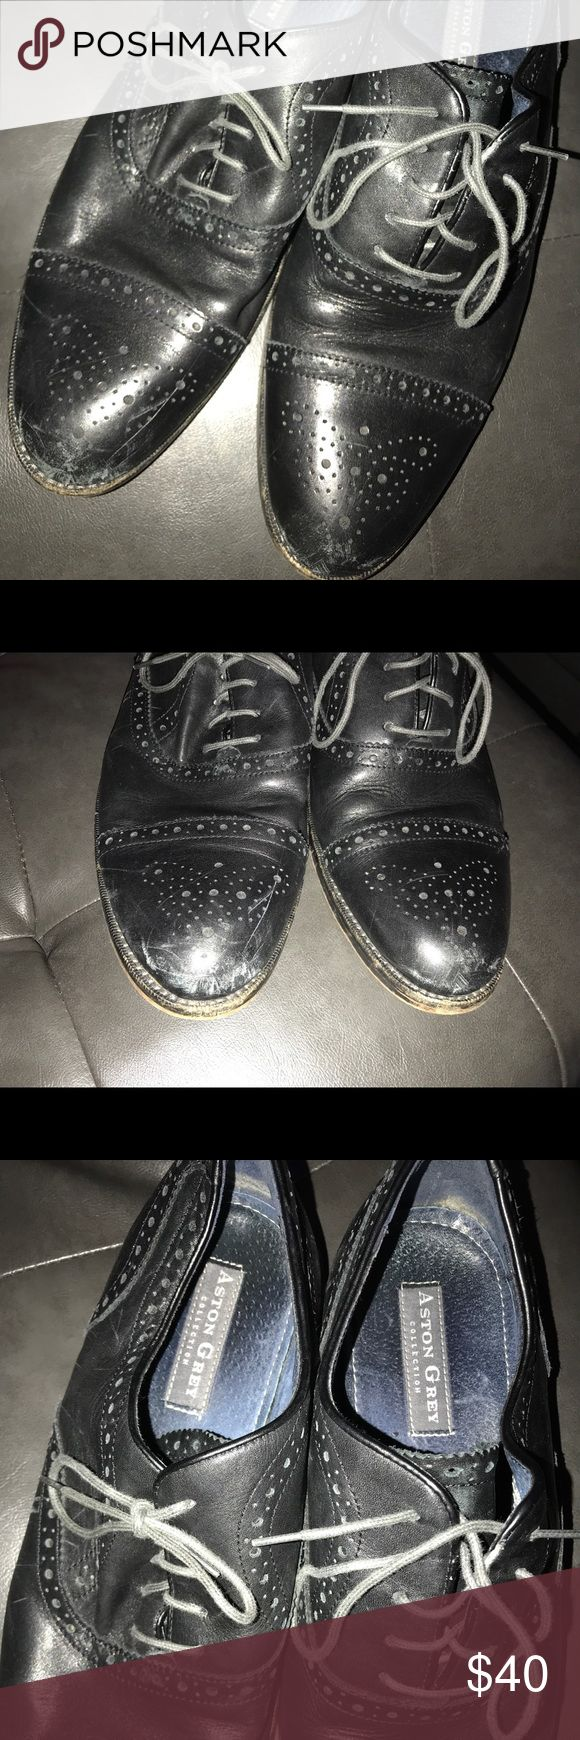 Ashton Grey Kobe Oxford Navy Sz 11 Gently Used Ashton Grey Navy Sz 11. All star looks are what you will get when you are wearing the Kobe cap toe oxford from Aston Grey! Whether in the office or out on the town, this leather lace up with brogue details will keep you in the game in comfort. Item # 307478 UPC # 684954843861 FEATURES  Leather upper Lace-up closure Brogue details Round cap toe with medallion design Leather lining Leather lined, cushioned footbed Shoes Loafers & Slip-Ons